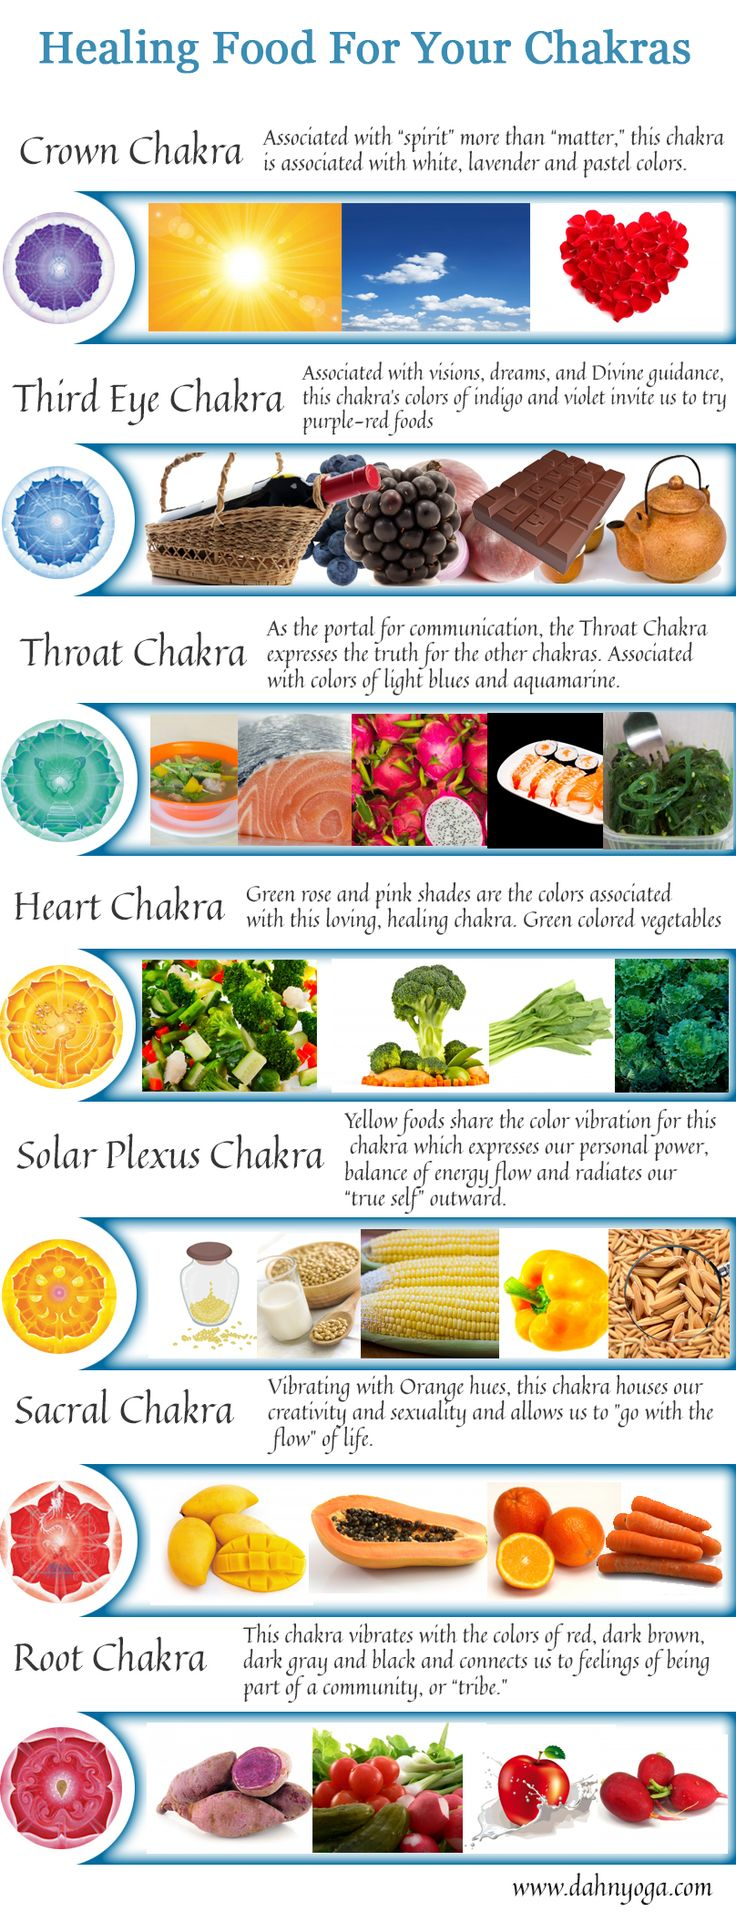 Food for balancing and healing your chakras: http://www.dahnyoga.com/yoga-life/2081/3/Food-for-Chakra-Healing #kombuchaguru #meditation Also check out: http://kombuchaguru.com